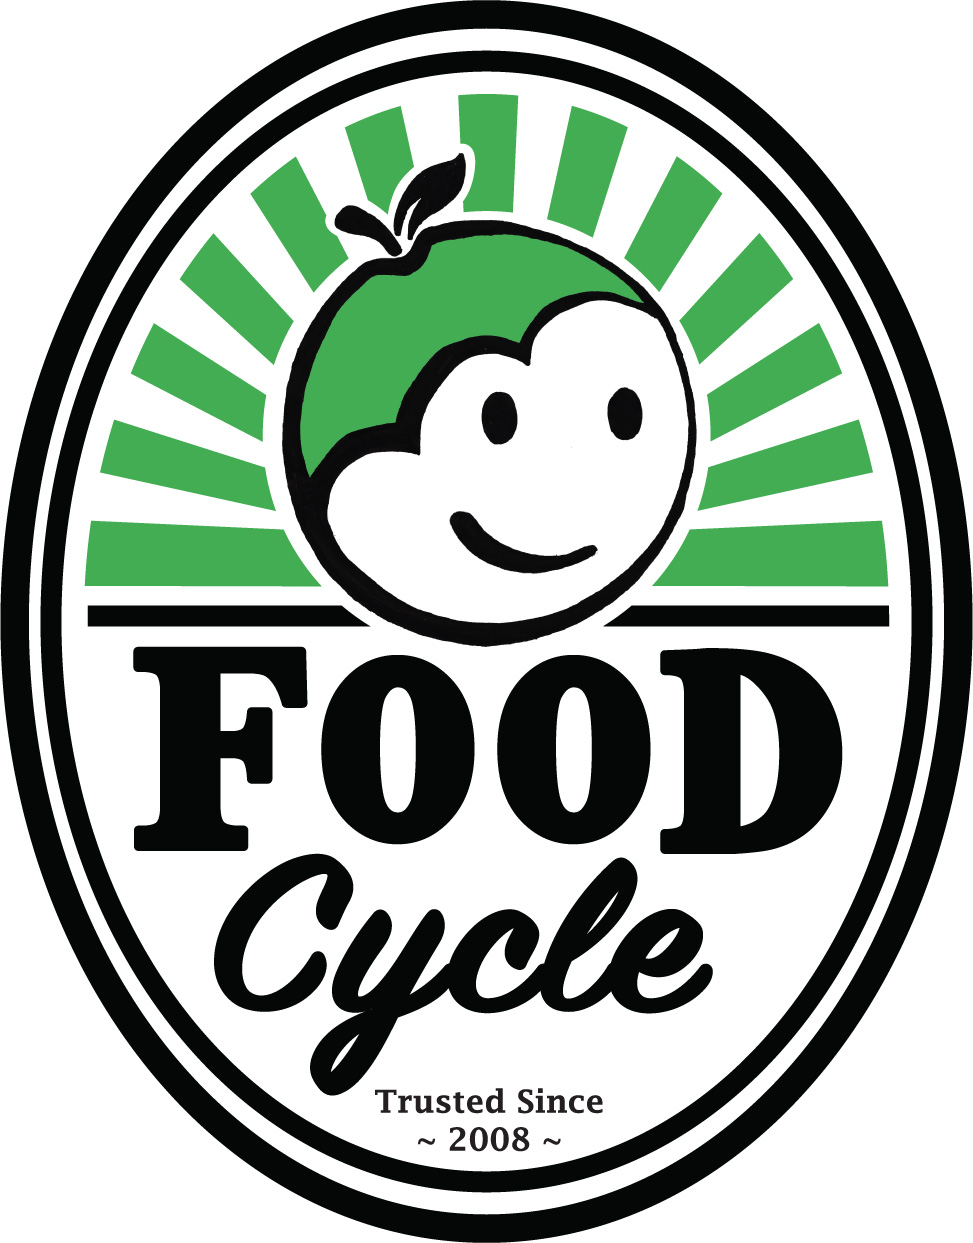 Volunteering at FoodCycle free community meal